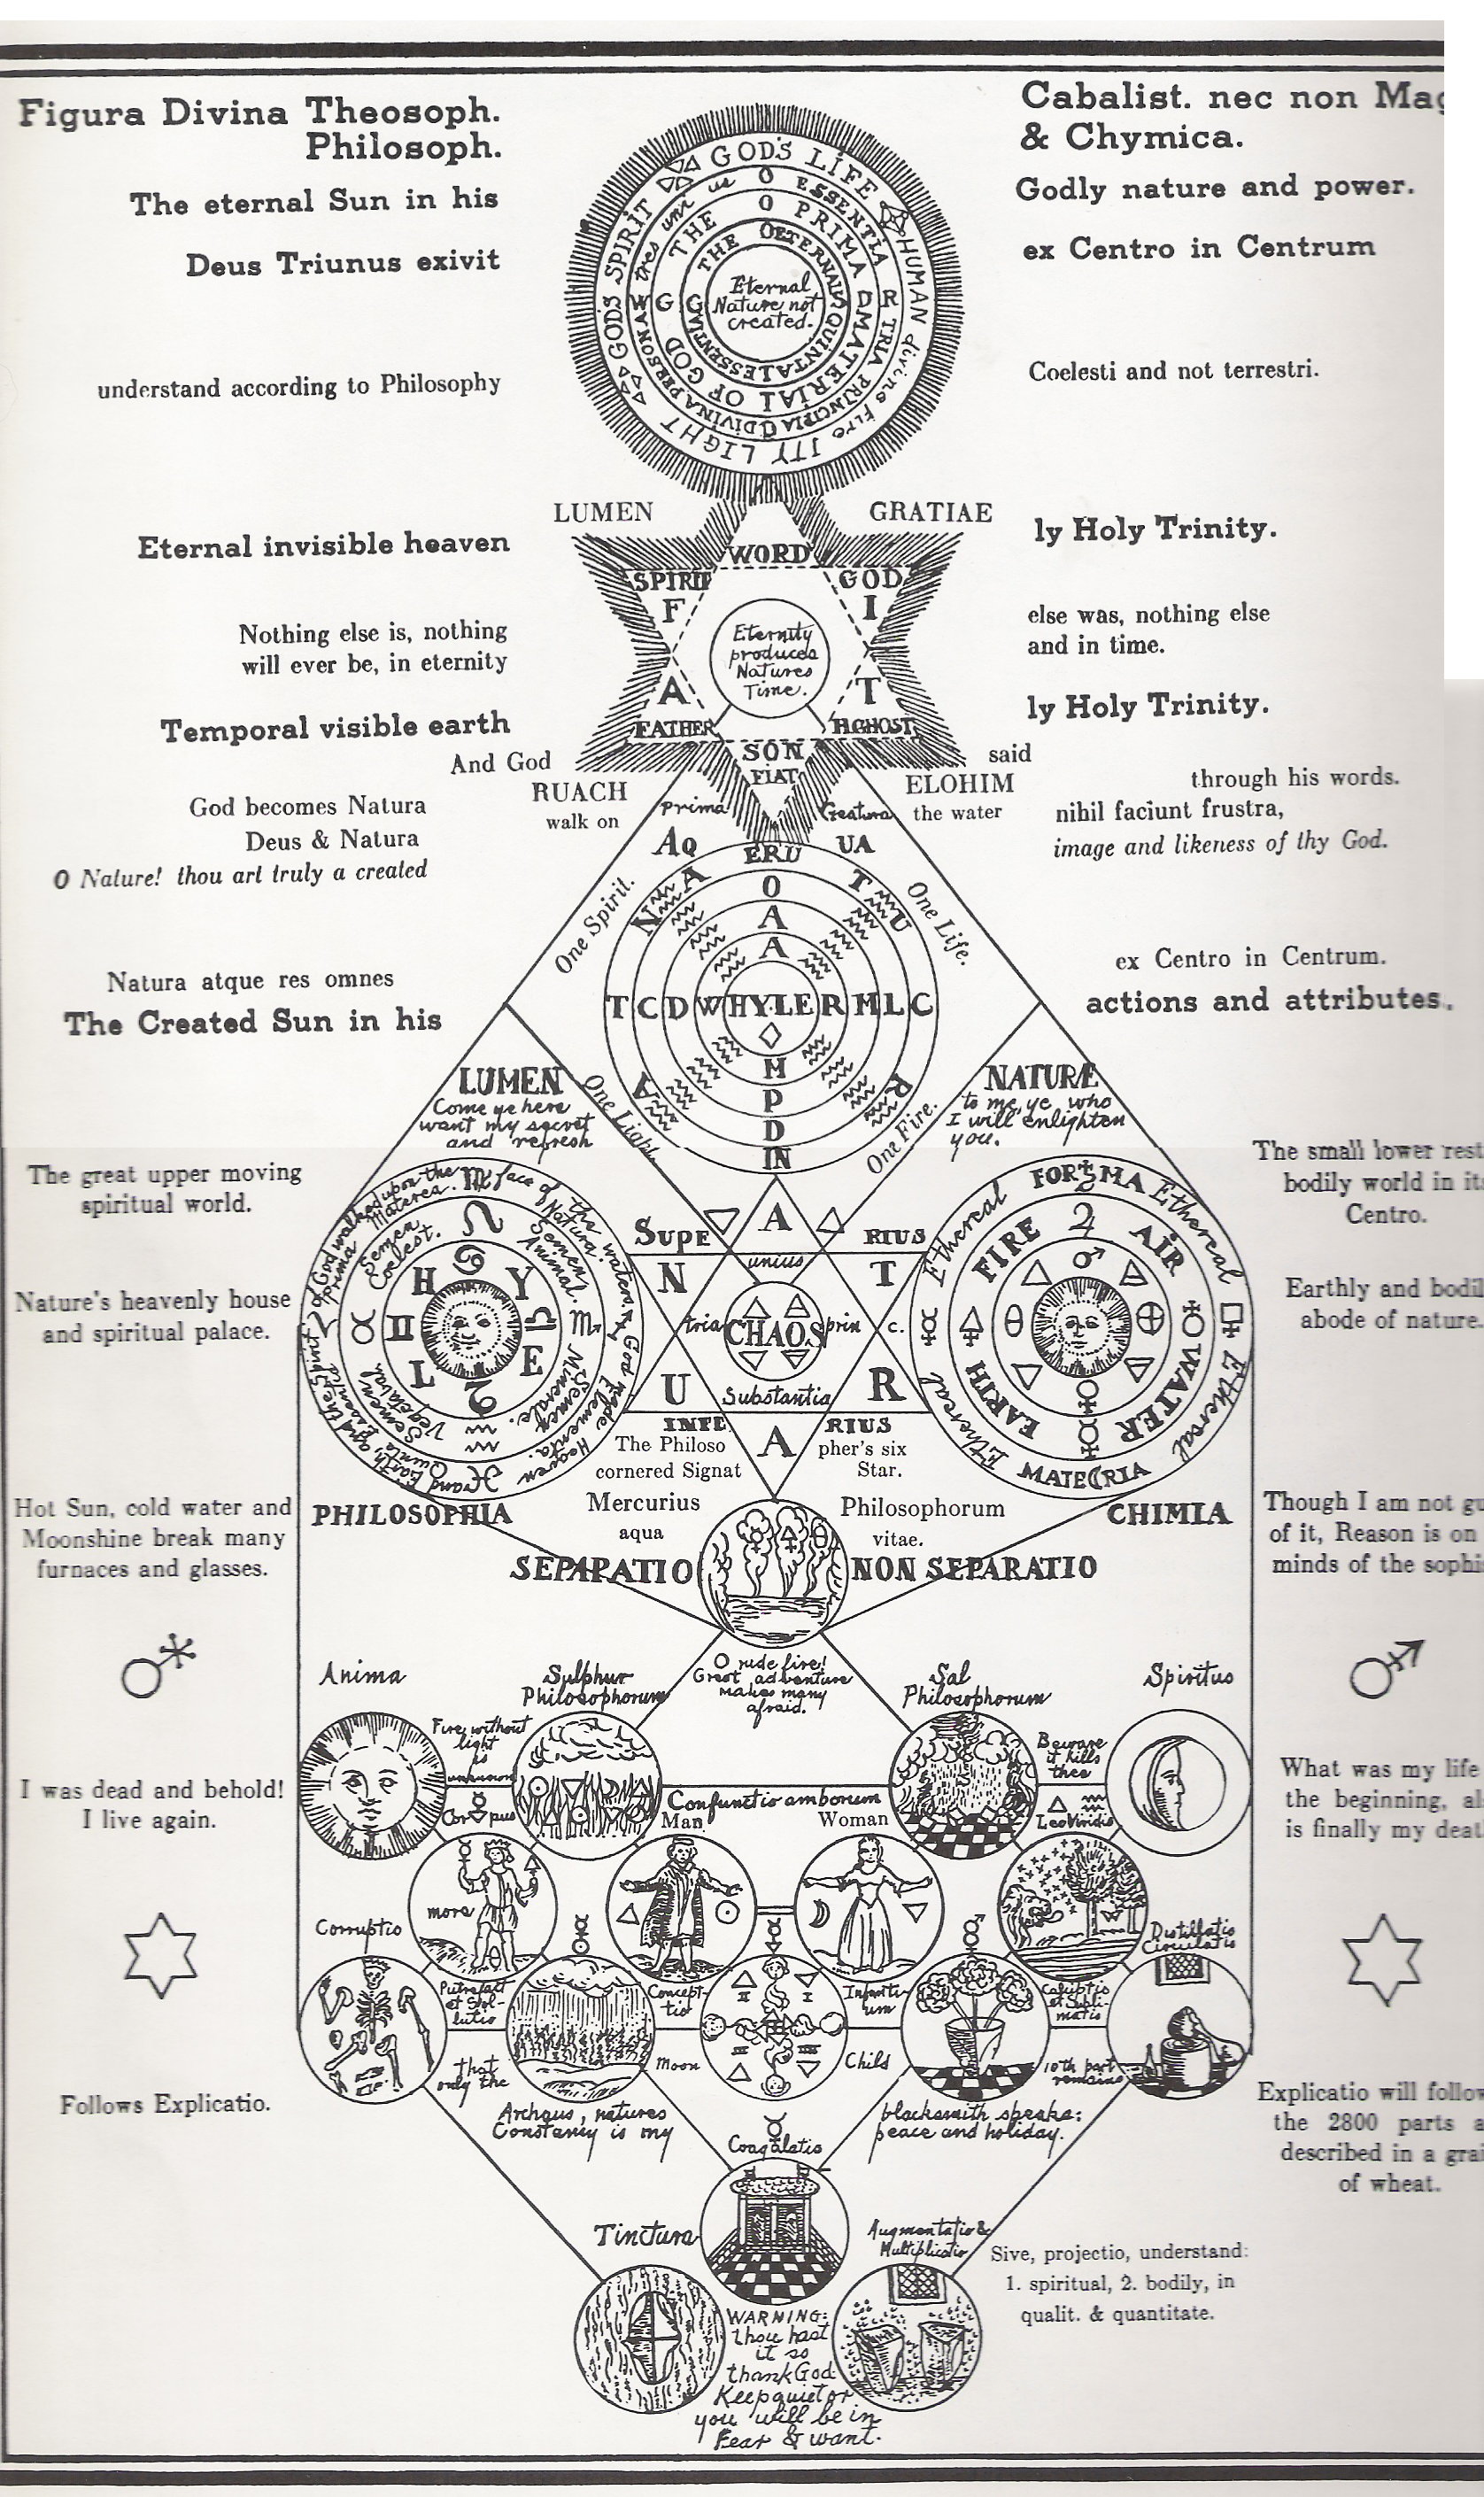 Secret symbols of the rosicrucians of the 16th and 17th centuries secret symbols of the rosicrucians of the 16th and 17th centuries buycottarizona Images